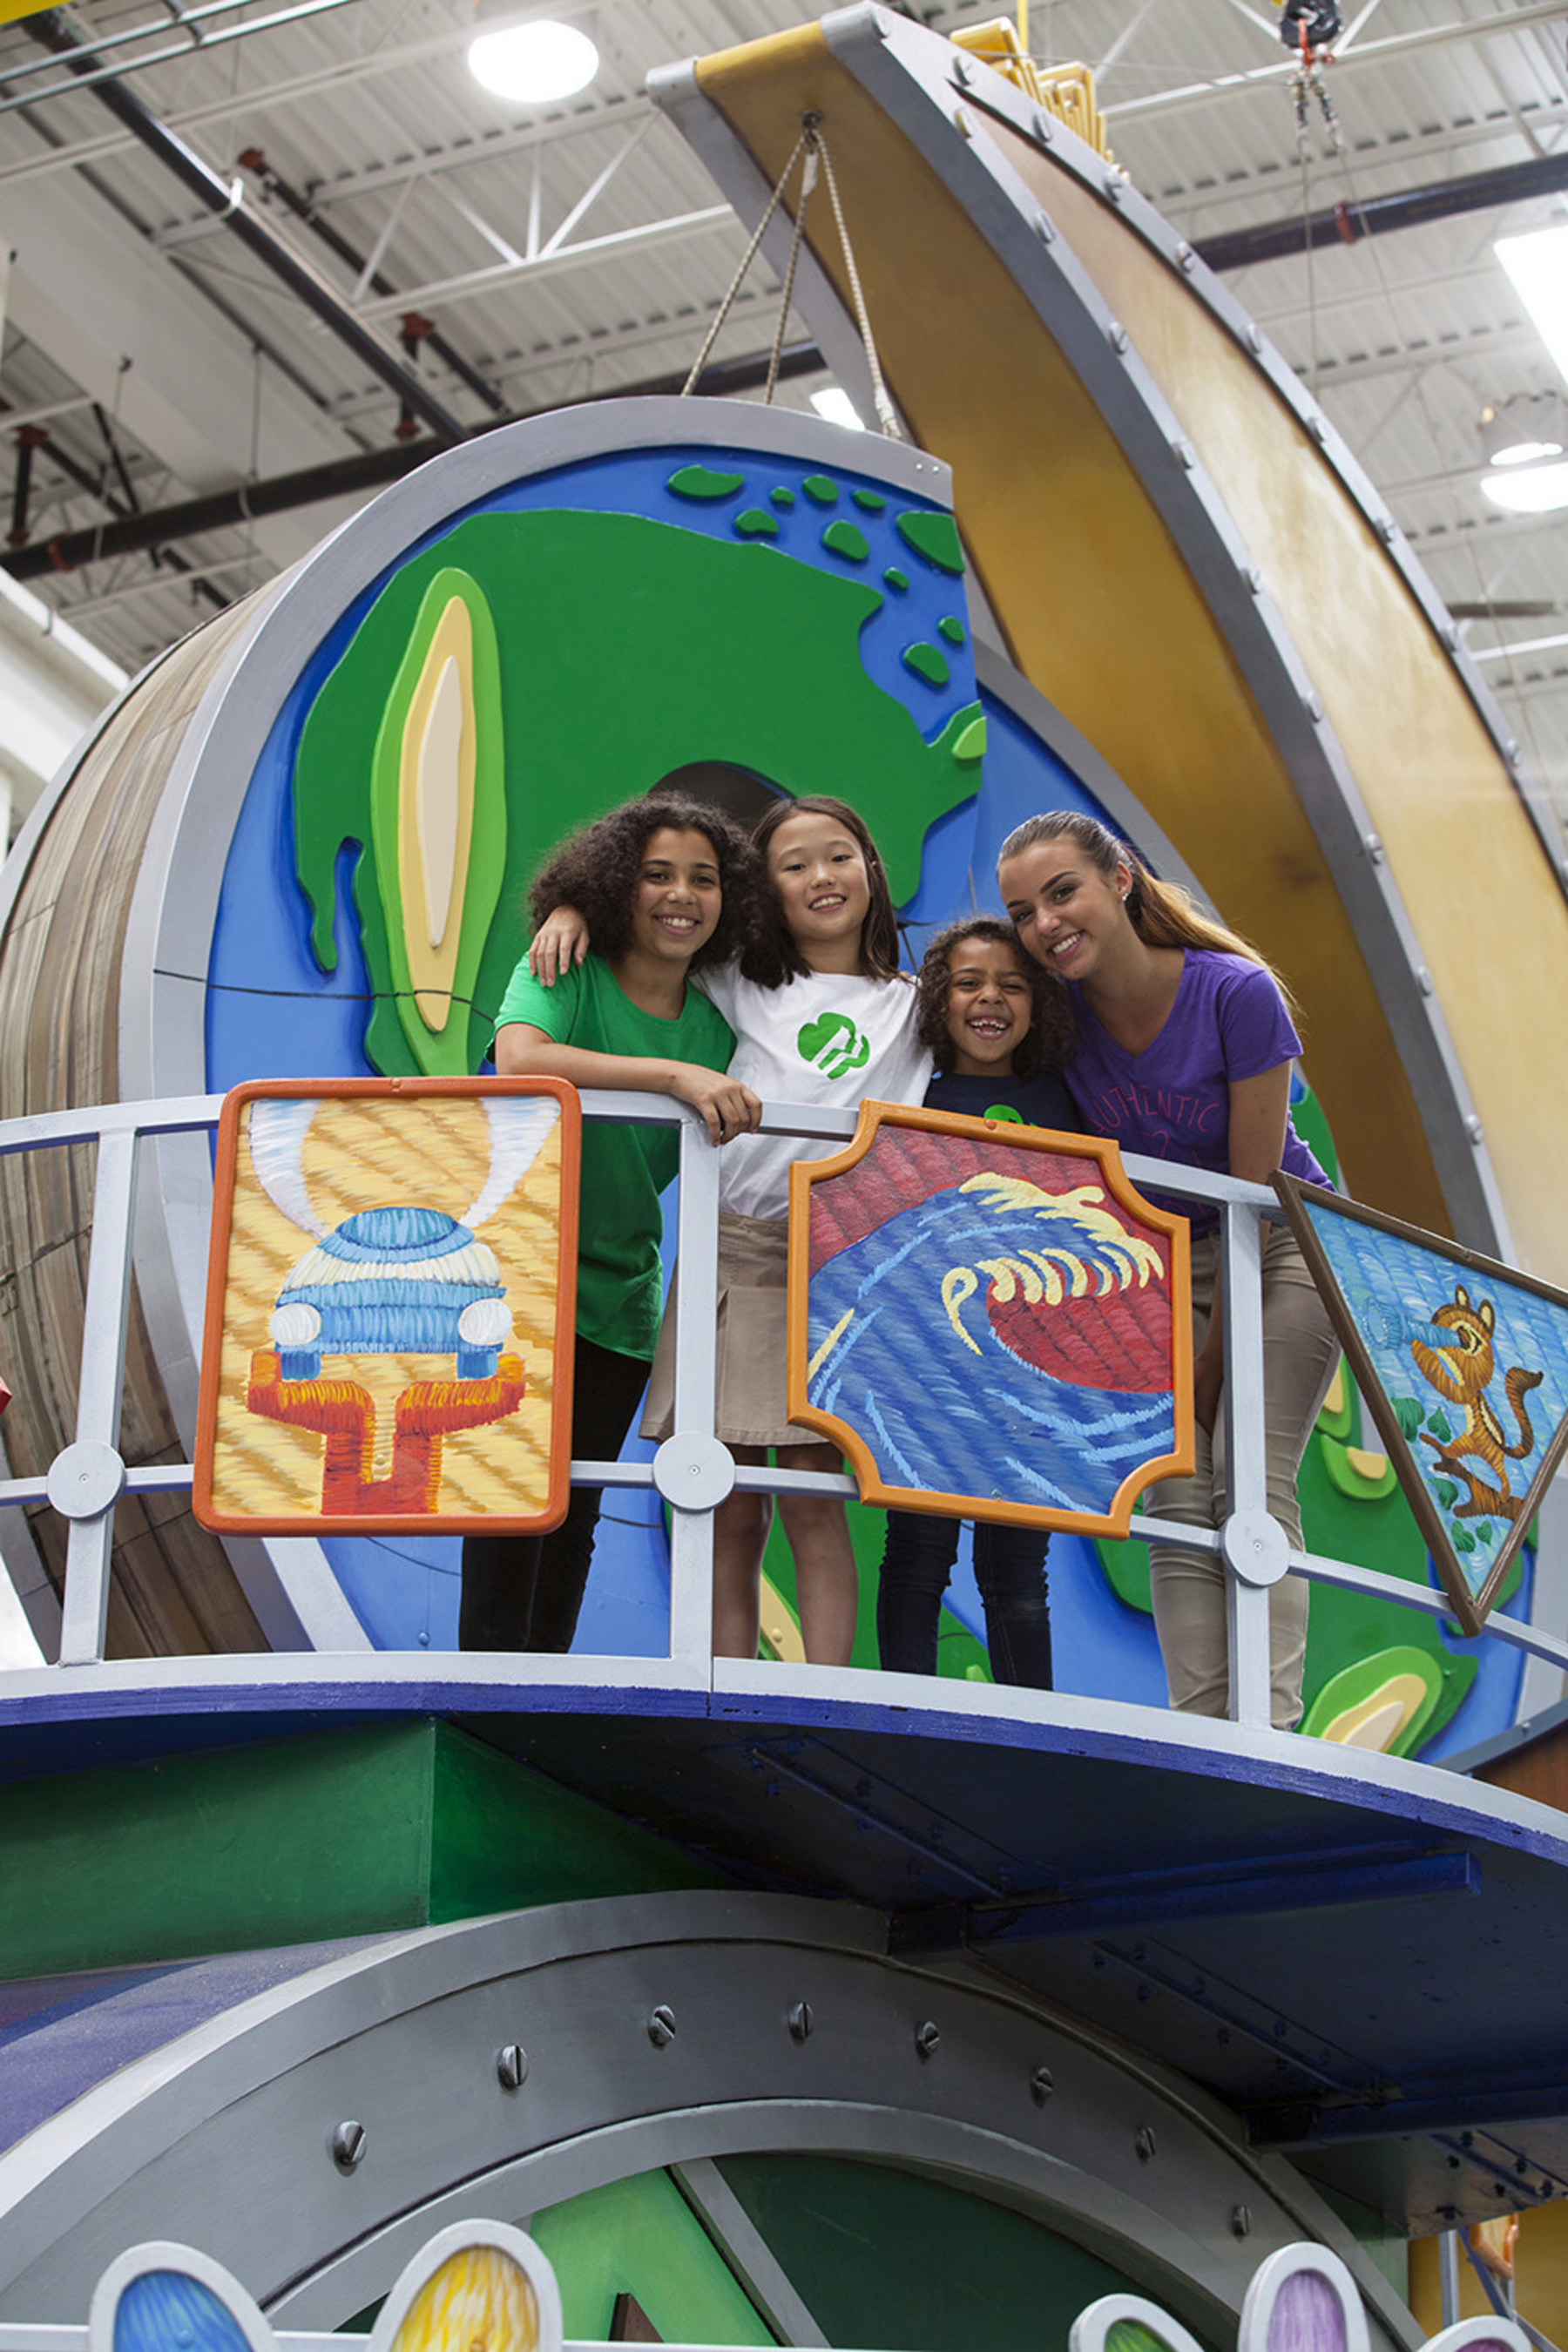 In addition to the giant 3-D puzzle pieces of the globe, the float features two dozen Girl Scout badges, representing everything from STEM and the outdoors to financial literacy and entrepreneurship, a friendship circle, and a Gold Award symbol that marks this year's centennial.